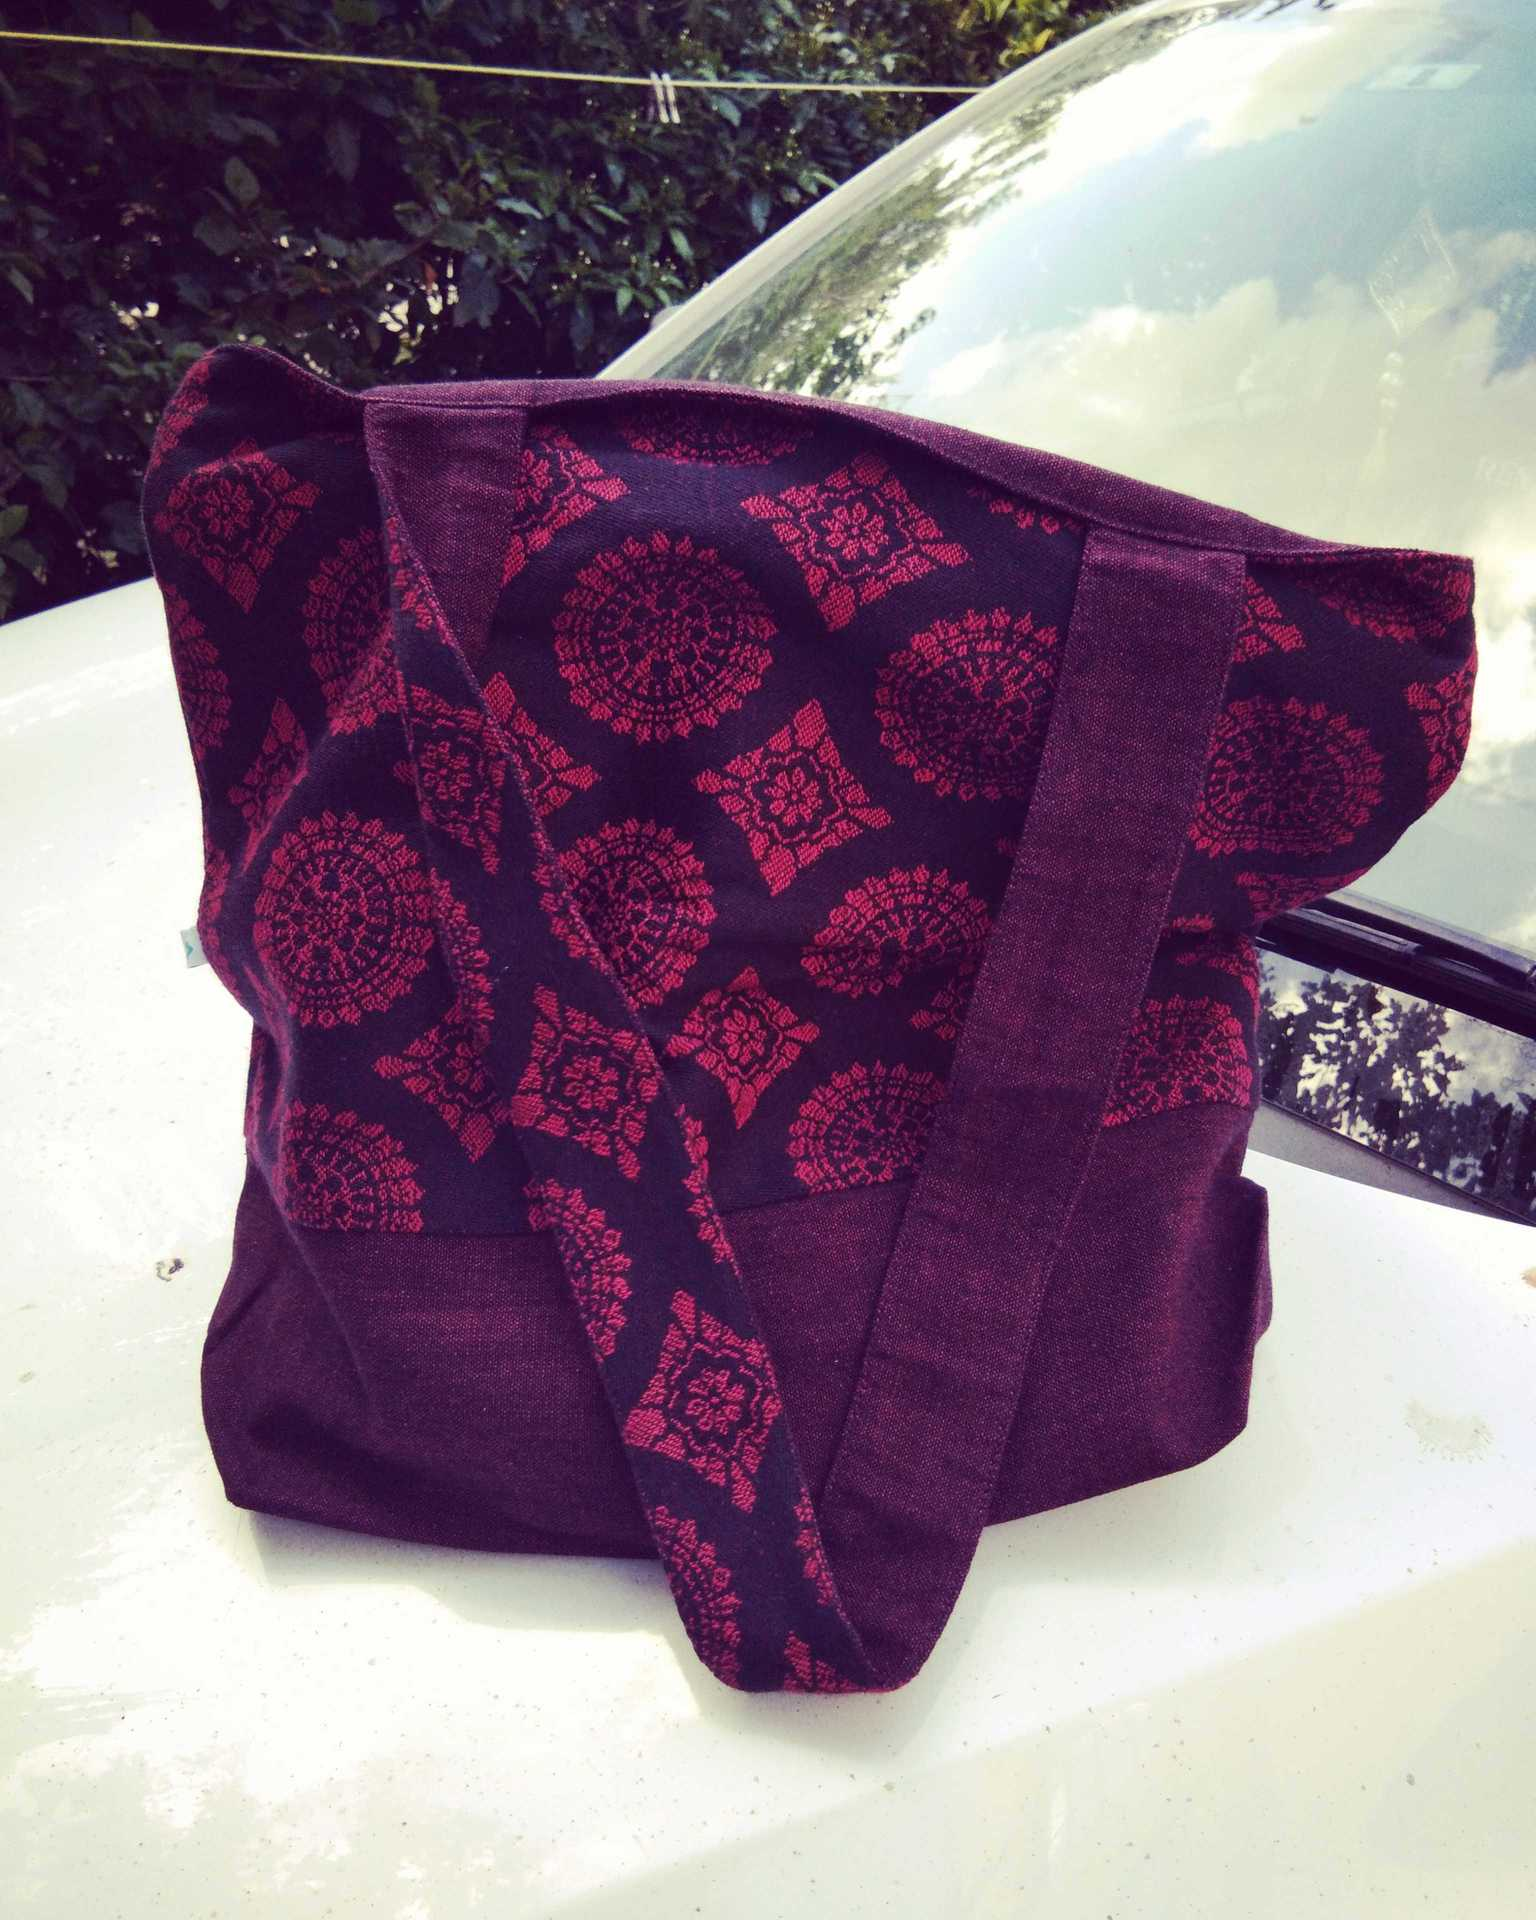 SOUL-IMPERIAL JACQUARD DAY BAG image